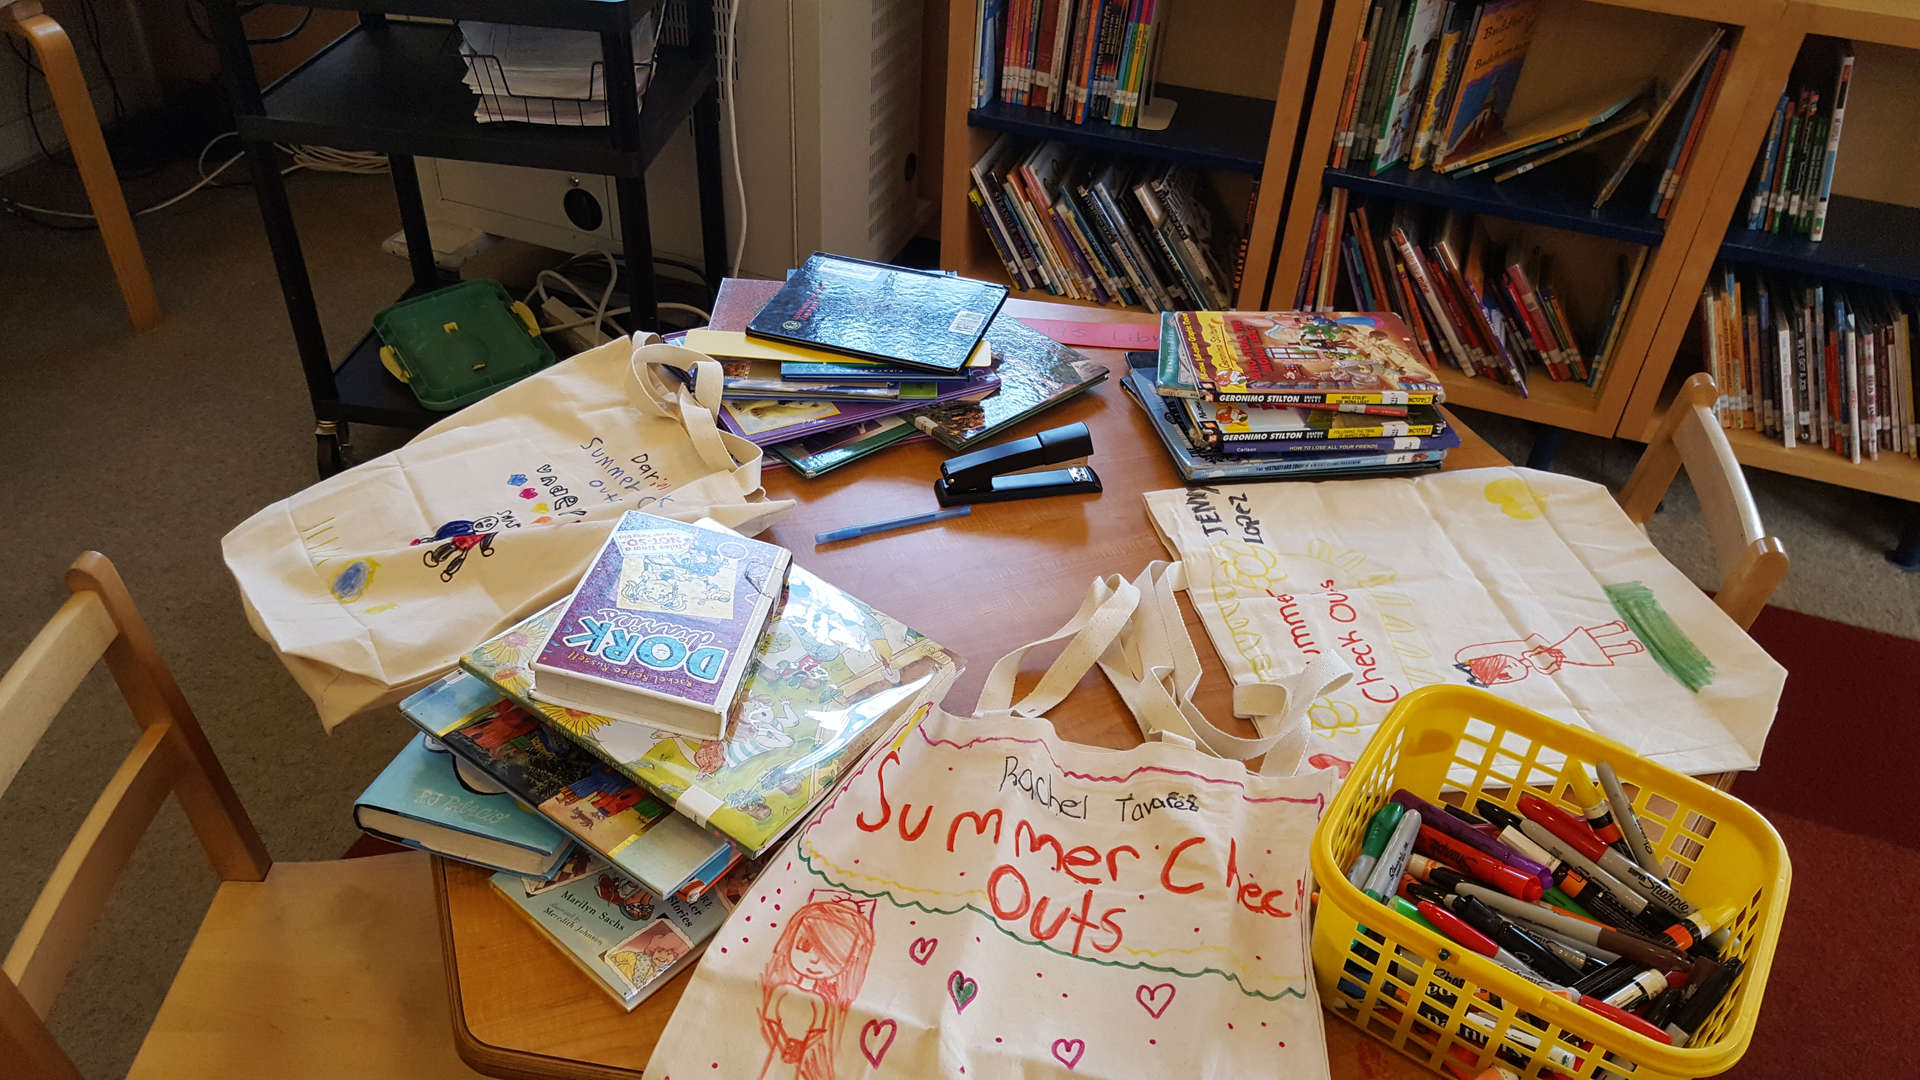 tote bags decorated by students and summer check out books